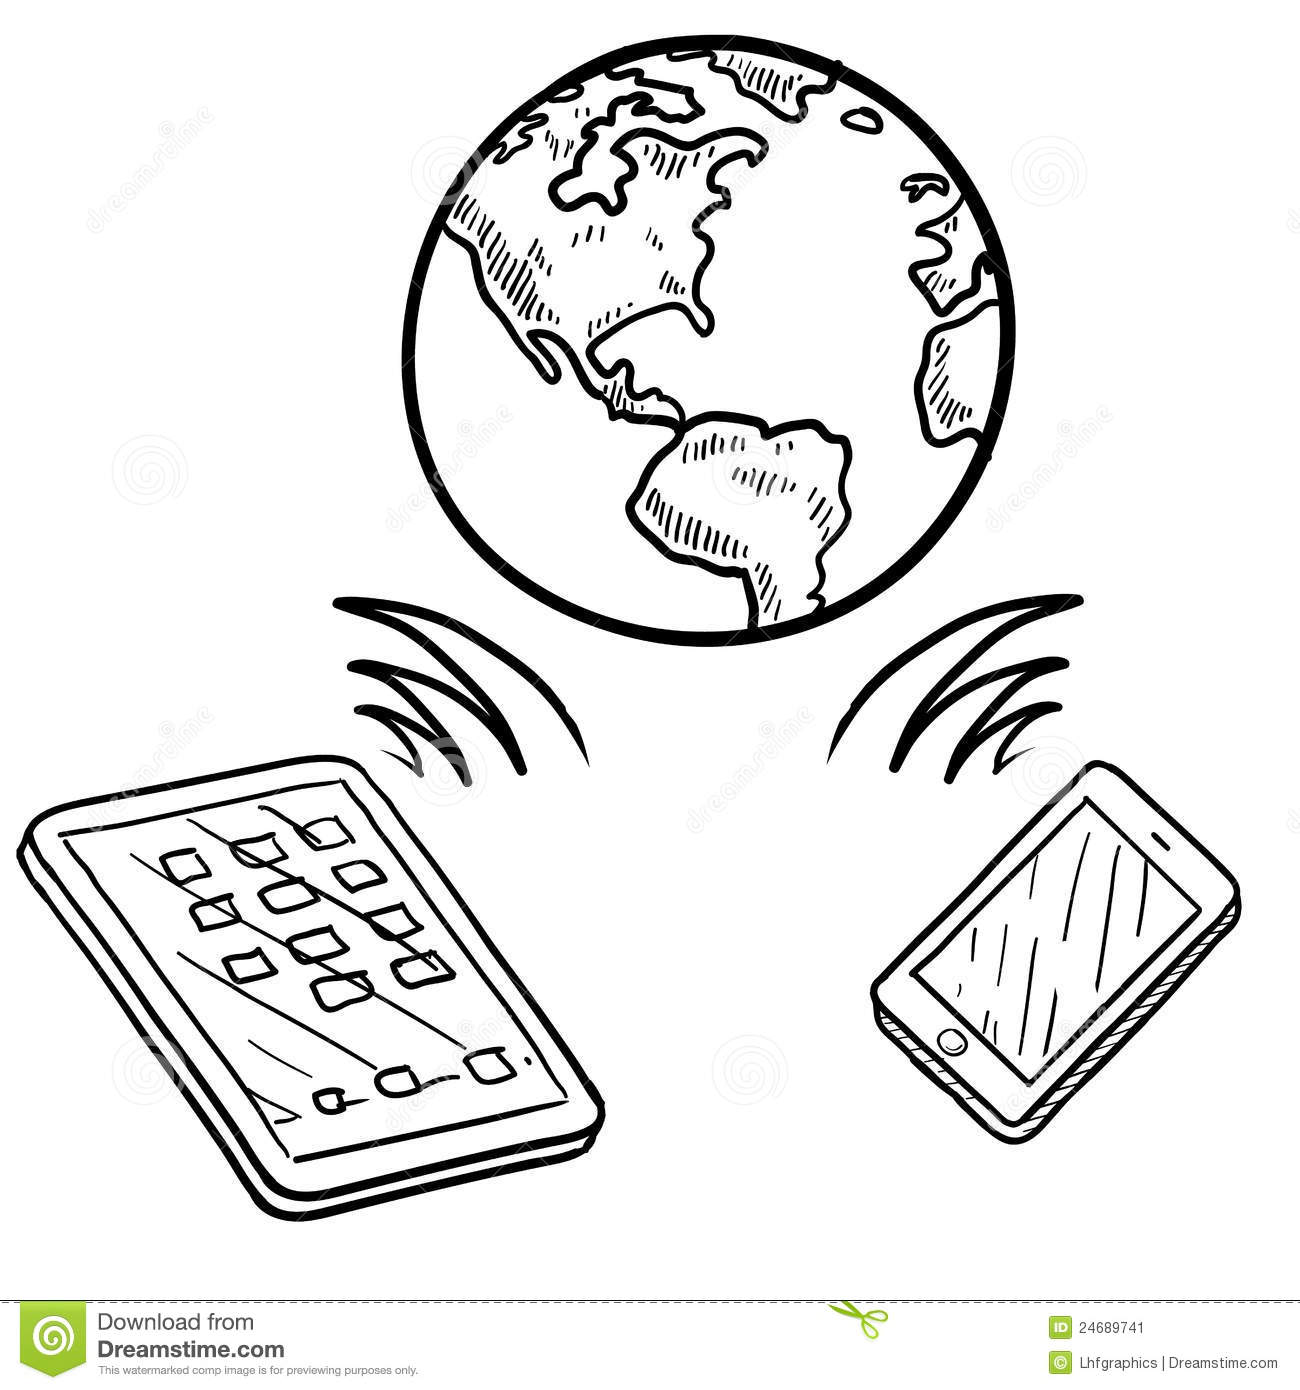 Global Communication Sketch Stock Vector Illustration Of